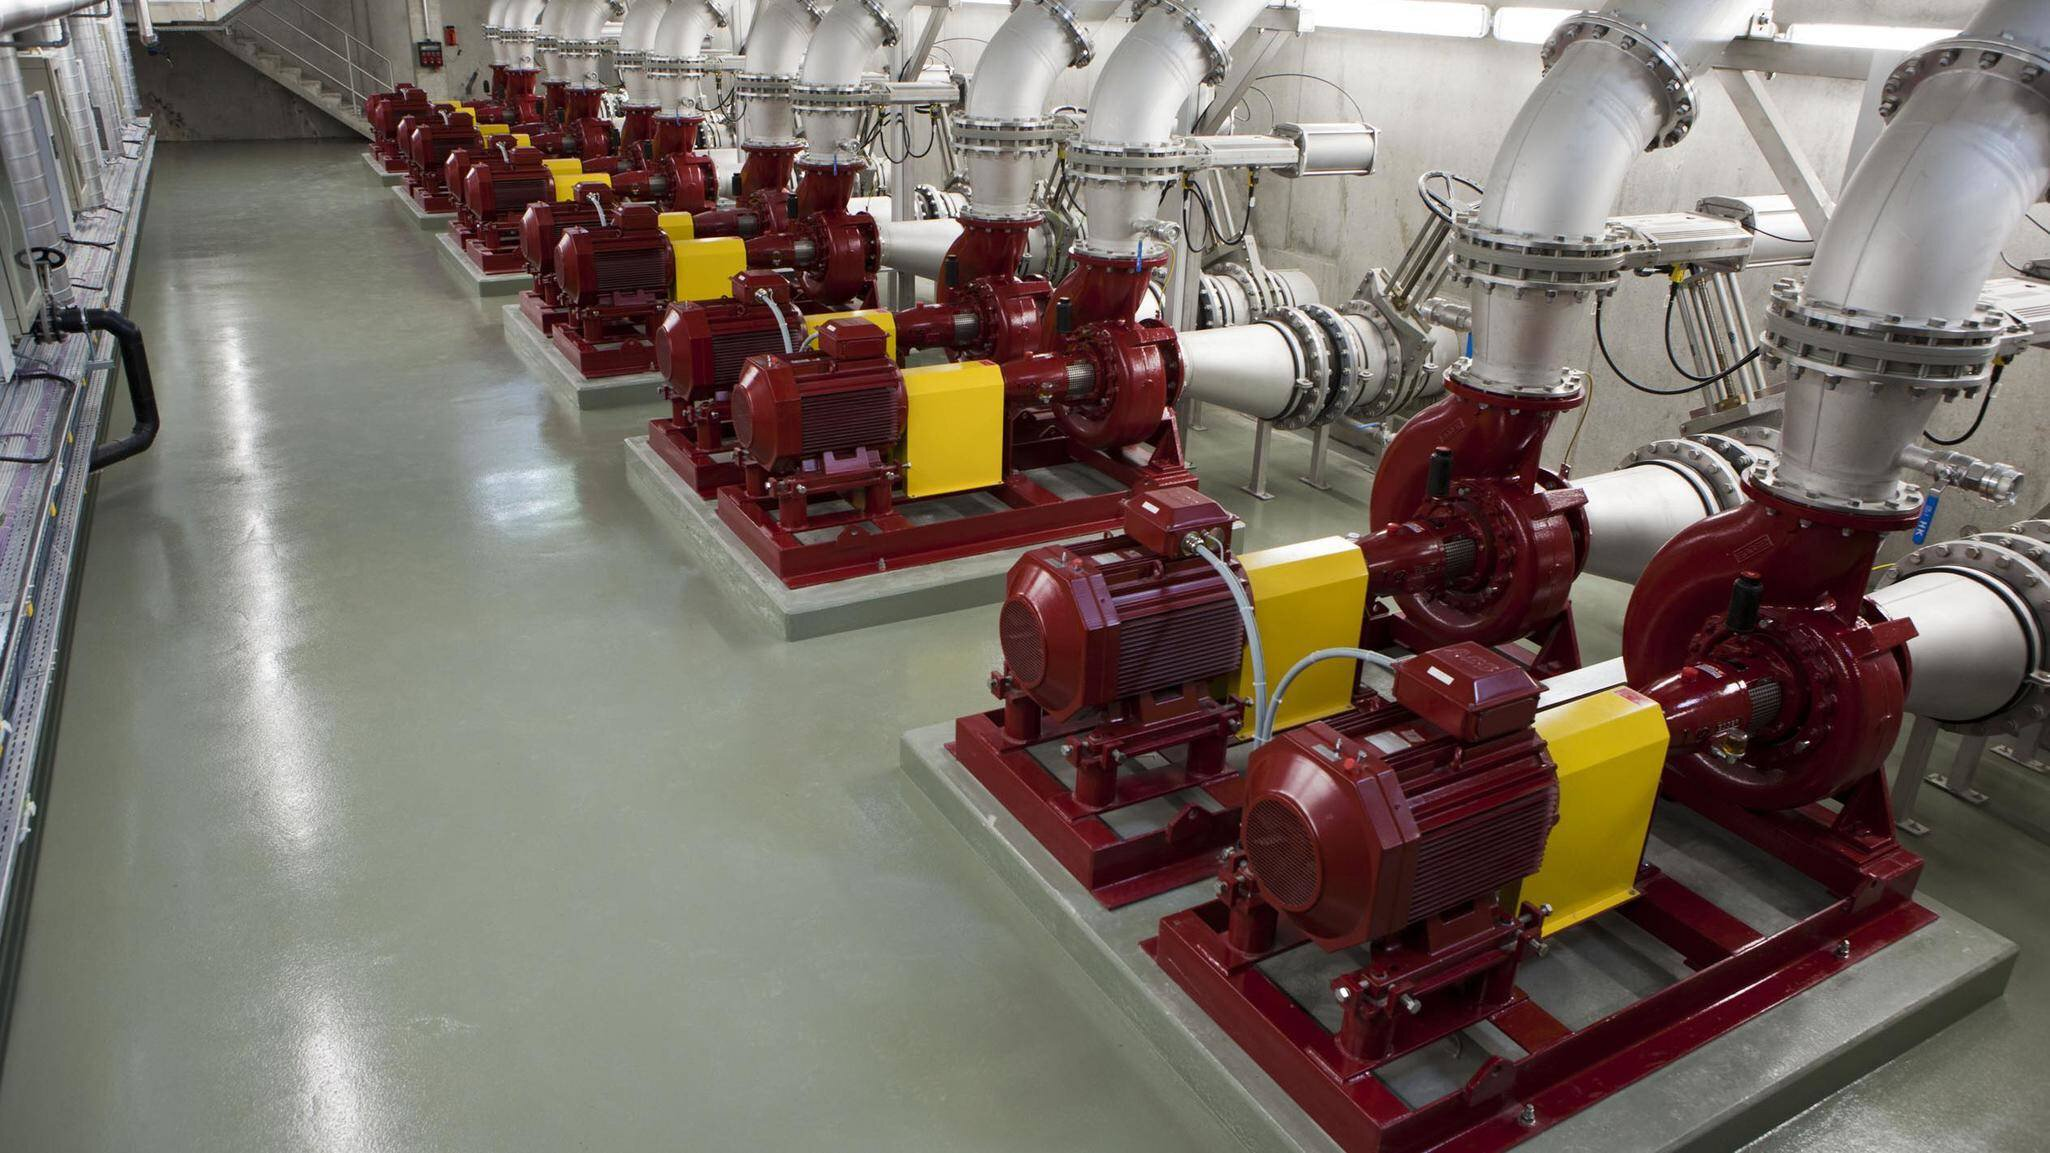 Gallery image 0 - Pumping station for biolgical tanks at Waste Water Treatment Plant WErdhölzli, Zürich with 2 x 12 EO Egger Process Pumps